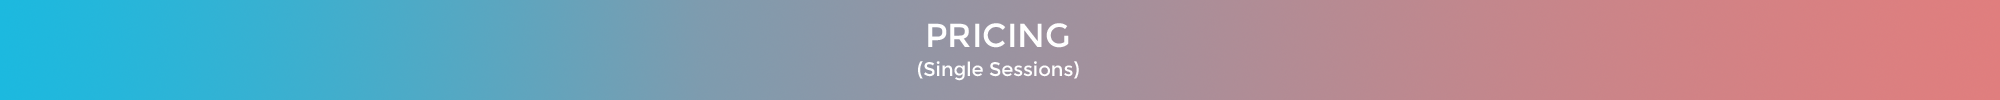 Pricing-header2.png